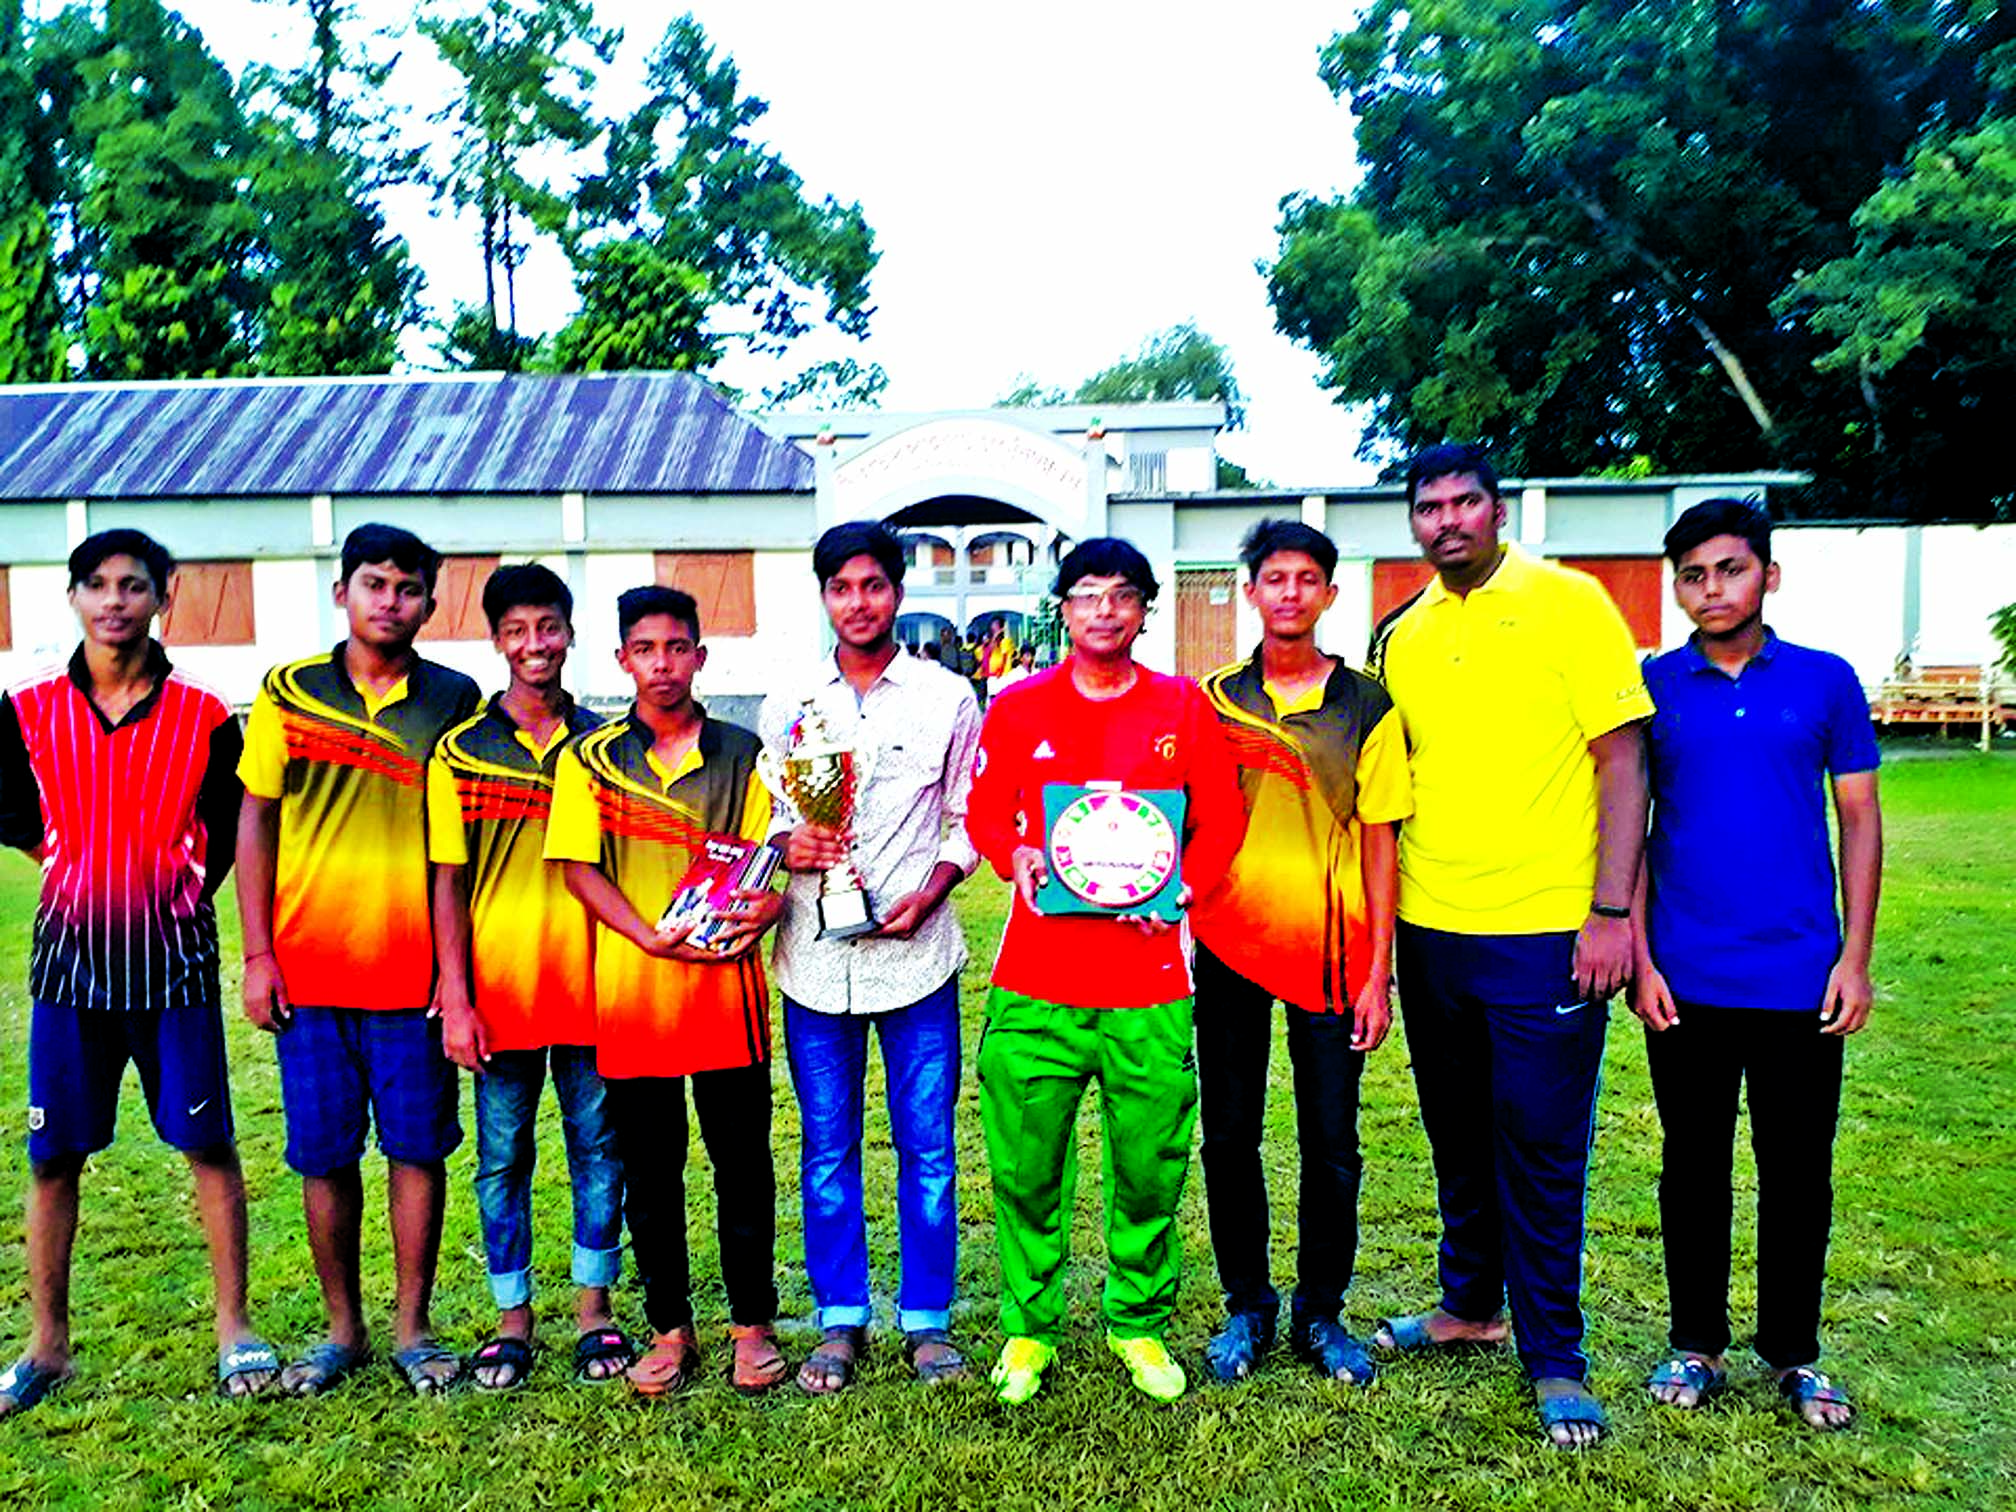 Members of Singair Government High School team, the champions in the Handball (Boys') Competition (upazila level) of the Bangladesh School & Madrasa Summer Sports Competition pose with the trophies at Singair Government High School Ground in Singair upazila, Manikganj district recently.